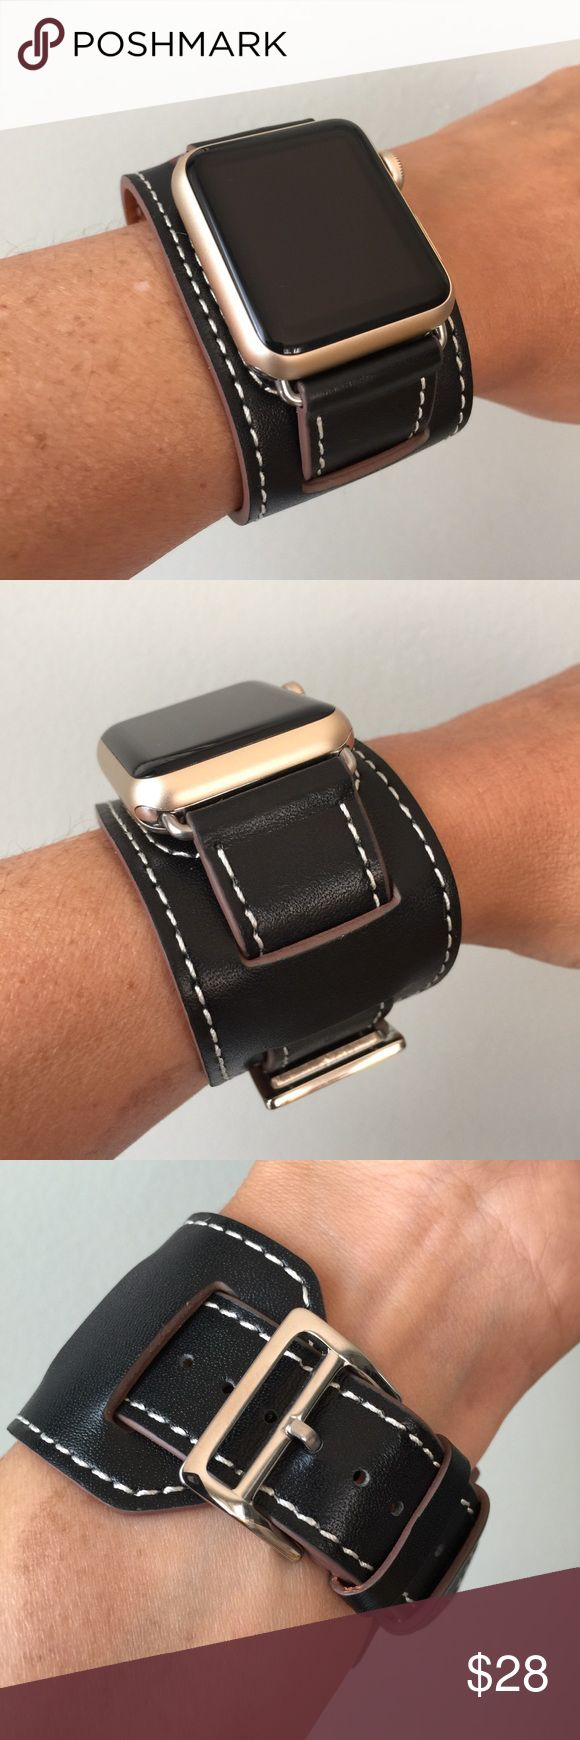 ⚪️Black Apple Watch Leather Cuff Band 38mm 42mm⚪️ Apple Watch cuff band, genuine high quality leather, with SILVER hardware.  It comes with 38mm or 42mm adapters. Please select your size when you purchase. The adapters also fit the Apple Watch I, 2, 3 and Sport.   I have other band colors, hardware colors and styles in my closet. Check them out!   I offer 15% off if you buy two or more! Please add BOTH items to the bundle for the discount to automatically apply.    Only the band is for sale…